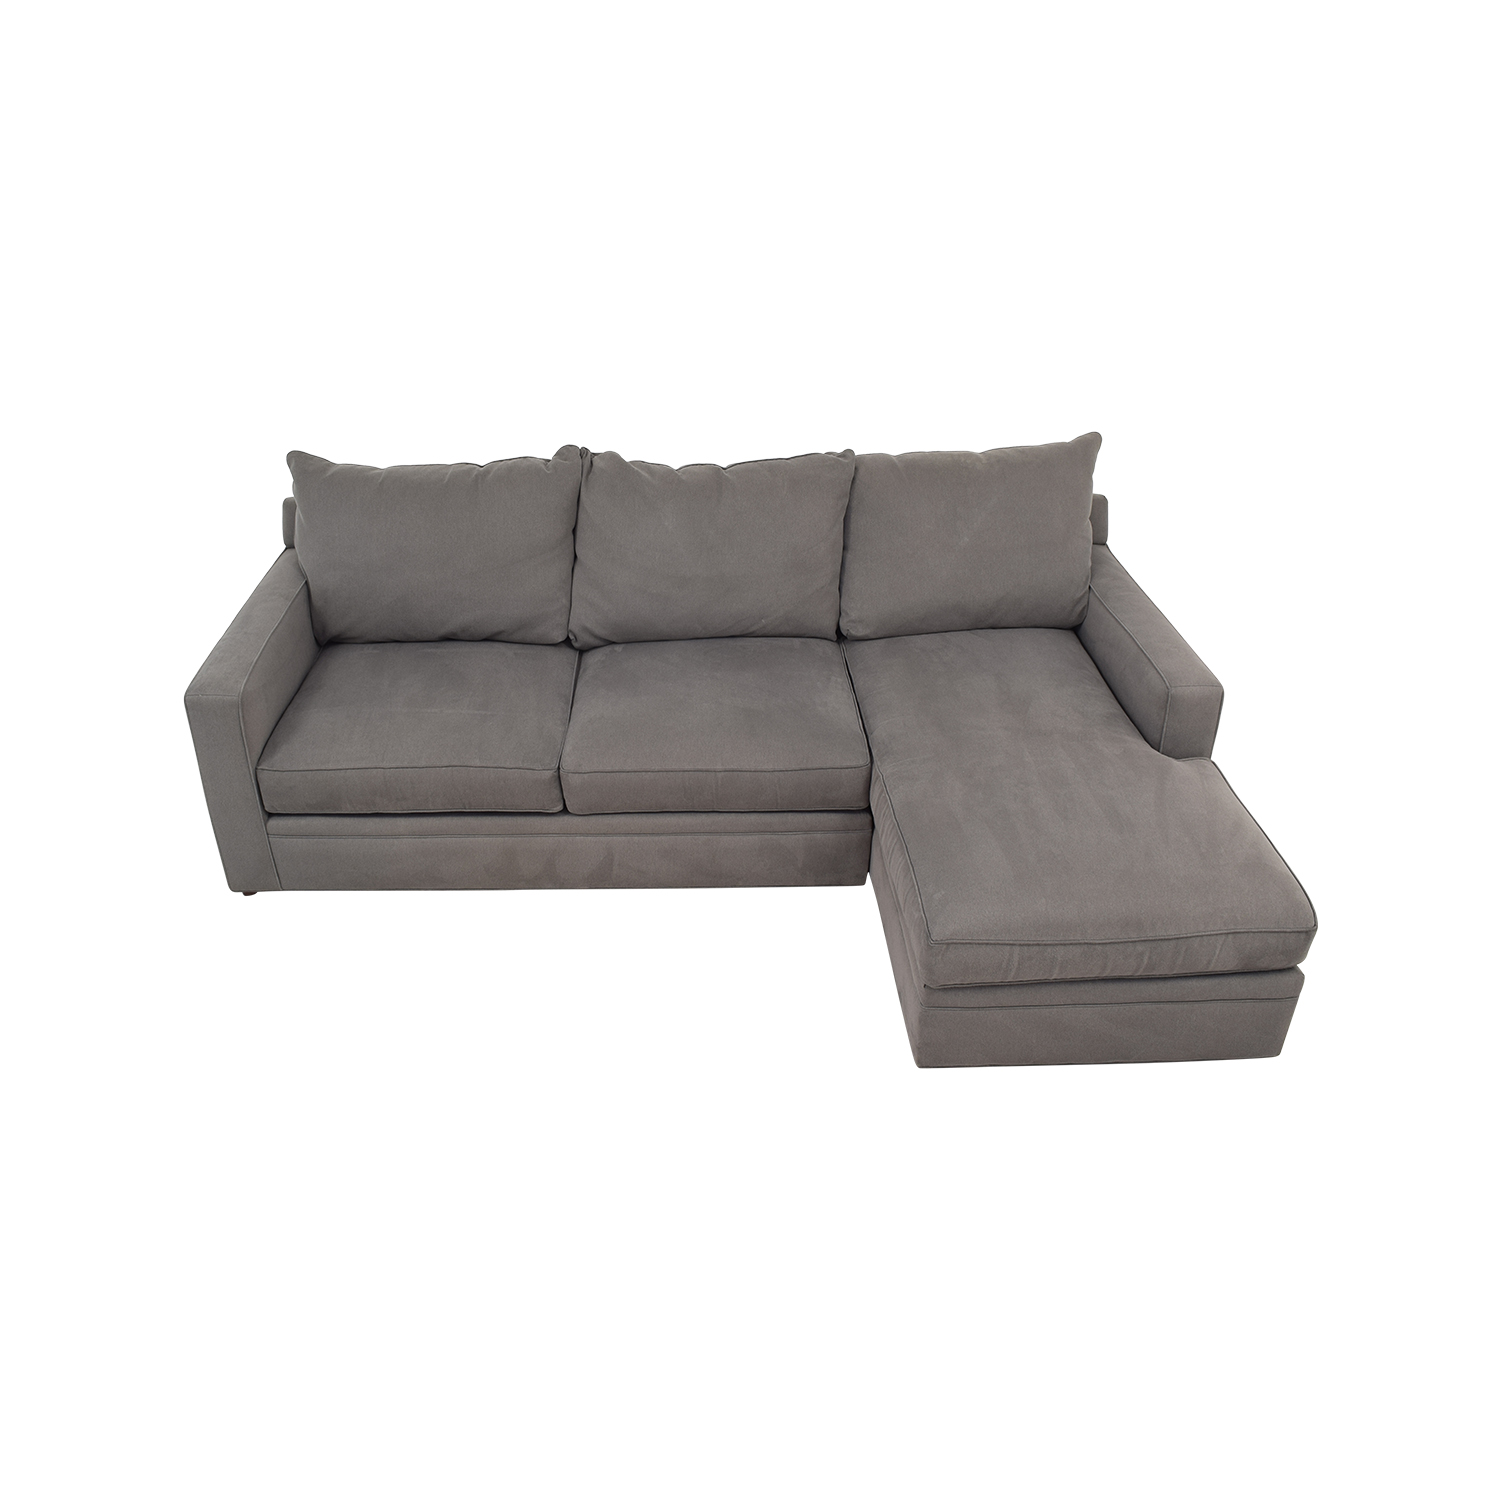 Room & Board Room & Board Orson Sectional Sofa with Chaise coupon